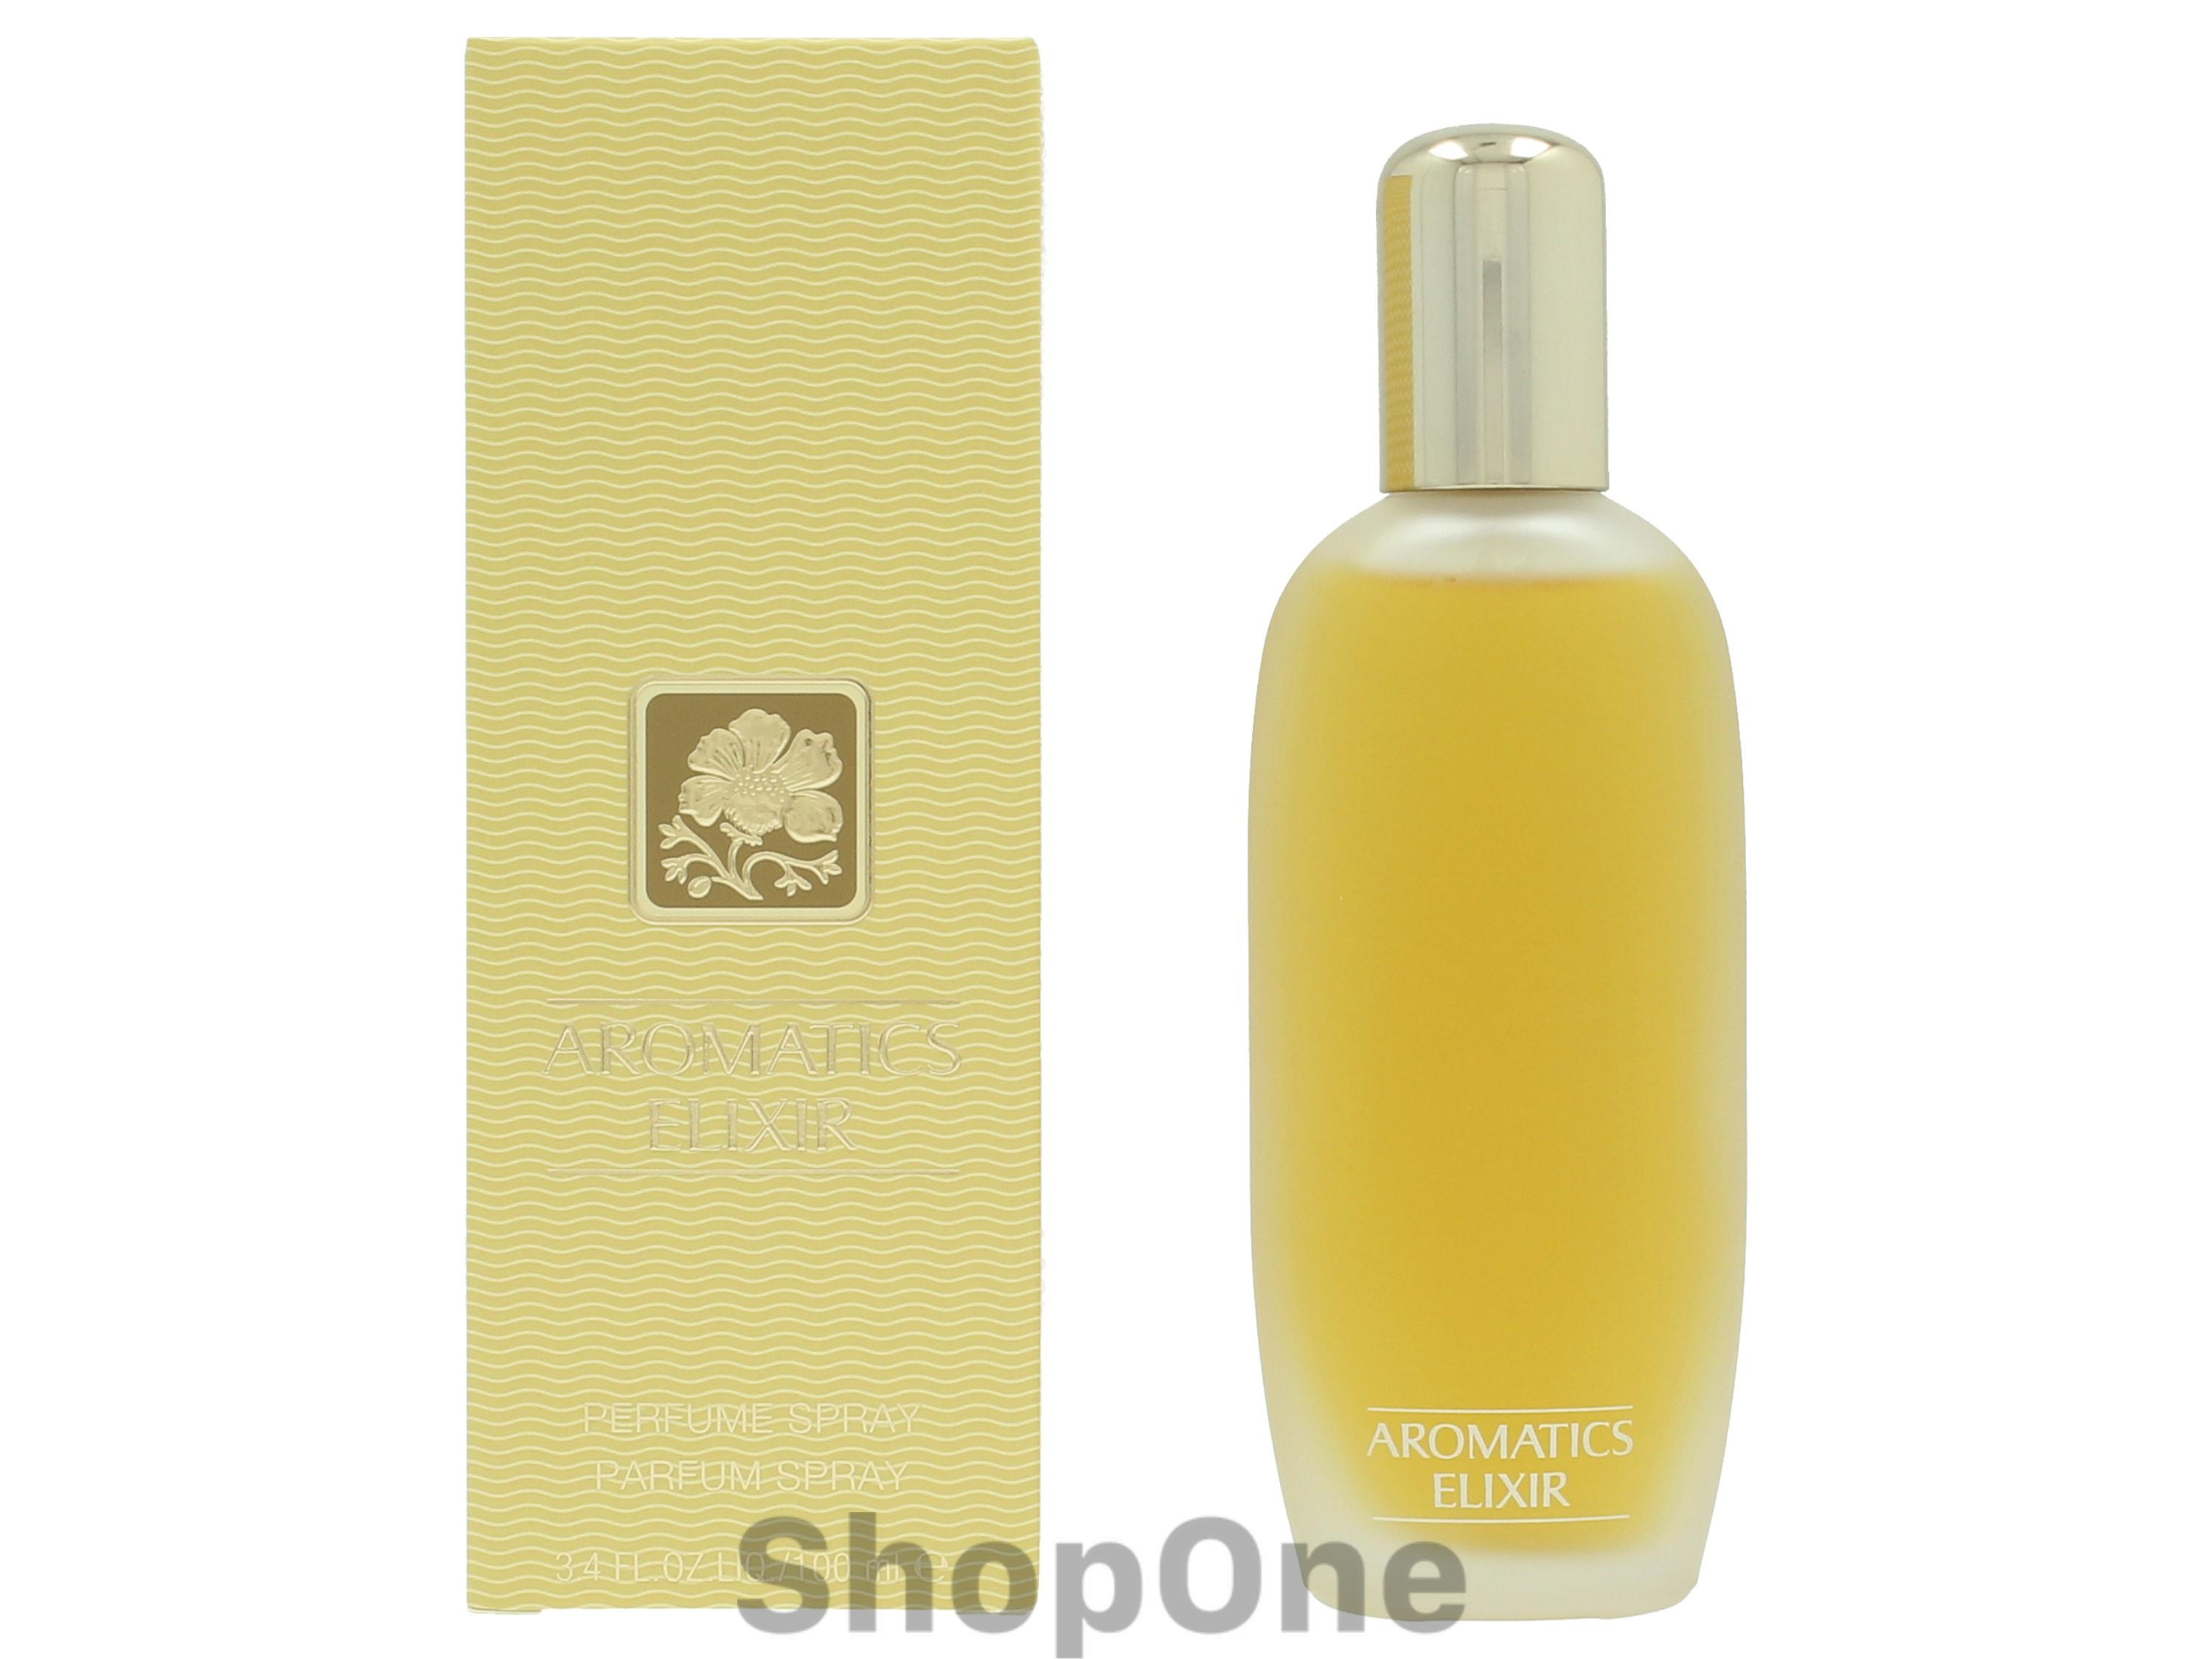 Image of   Aromatics Elixir Edp Spray 100 ml fra Clinique